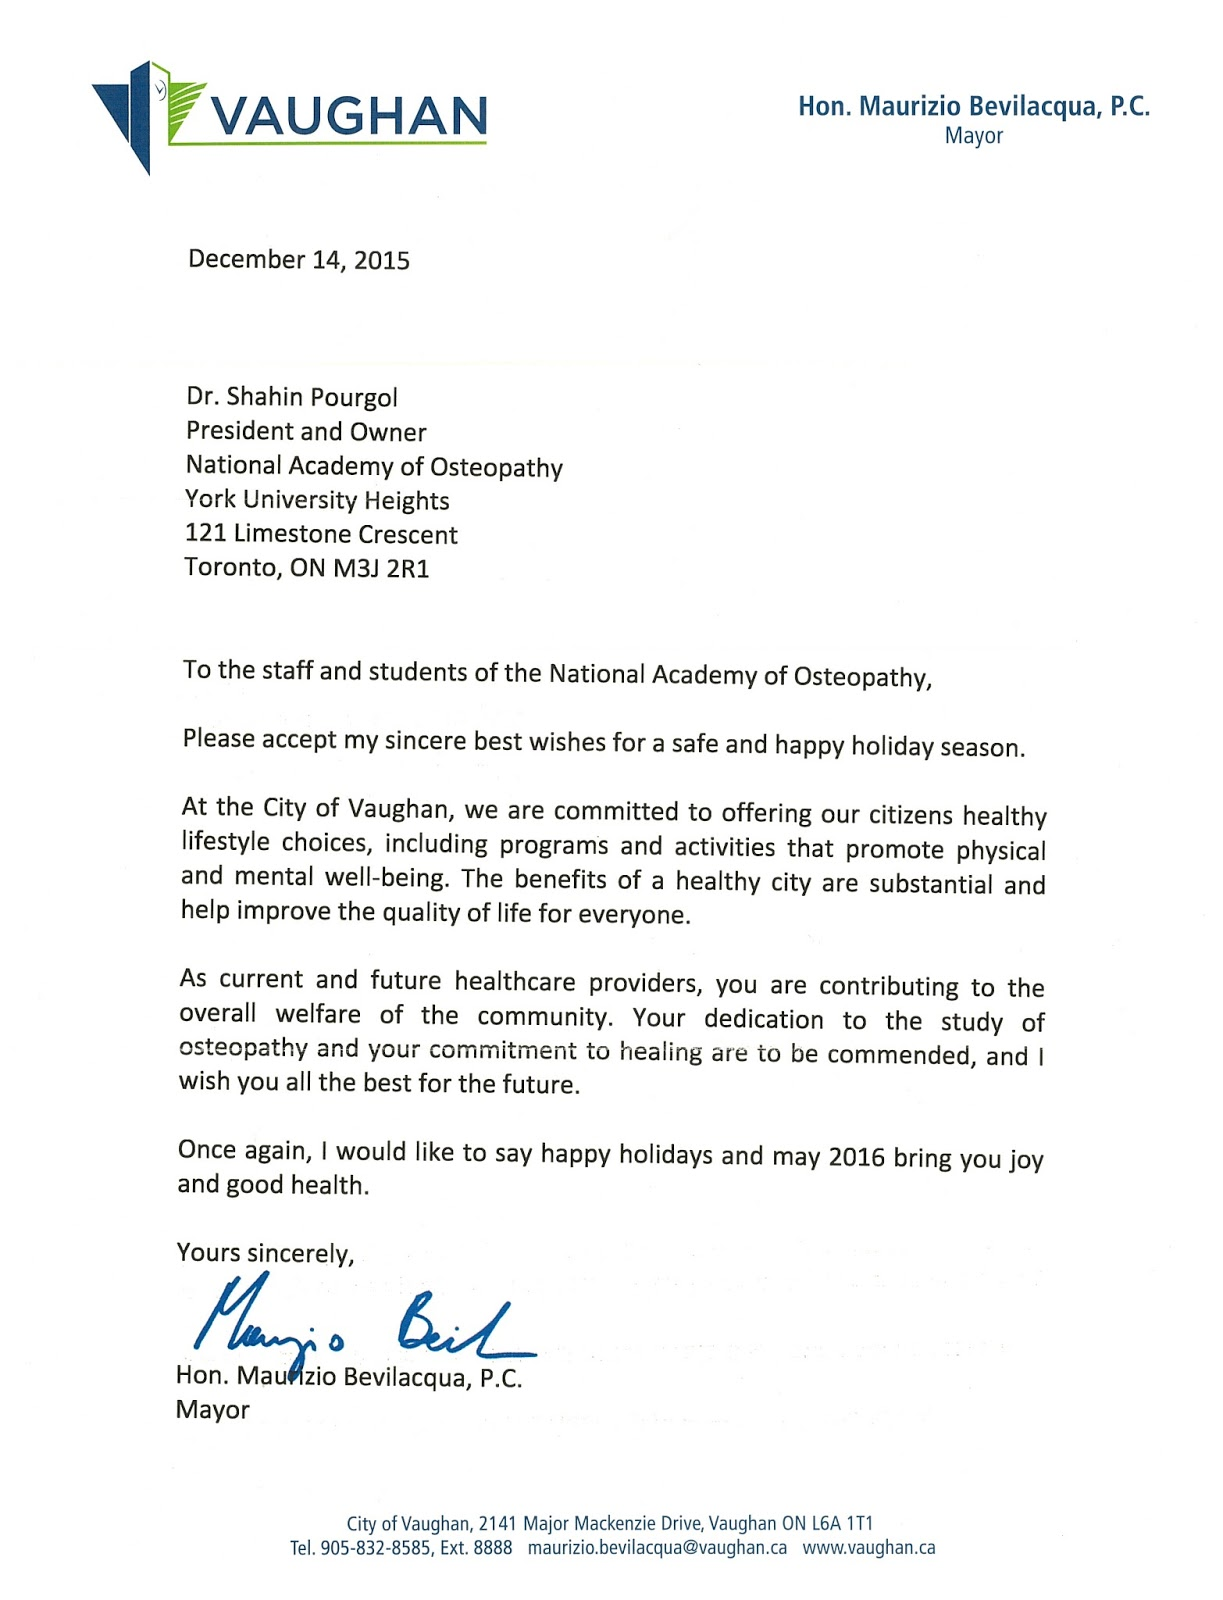 National academy of osteopathy canada letter from vaughan mayor for writing a letter to nao and its students it is so nice to know that the mayor of one of the largest canadian cities is thinking about our students m4hsunfo